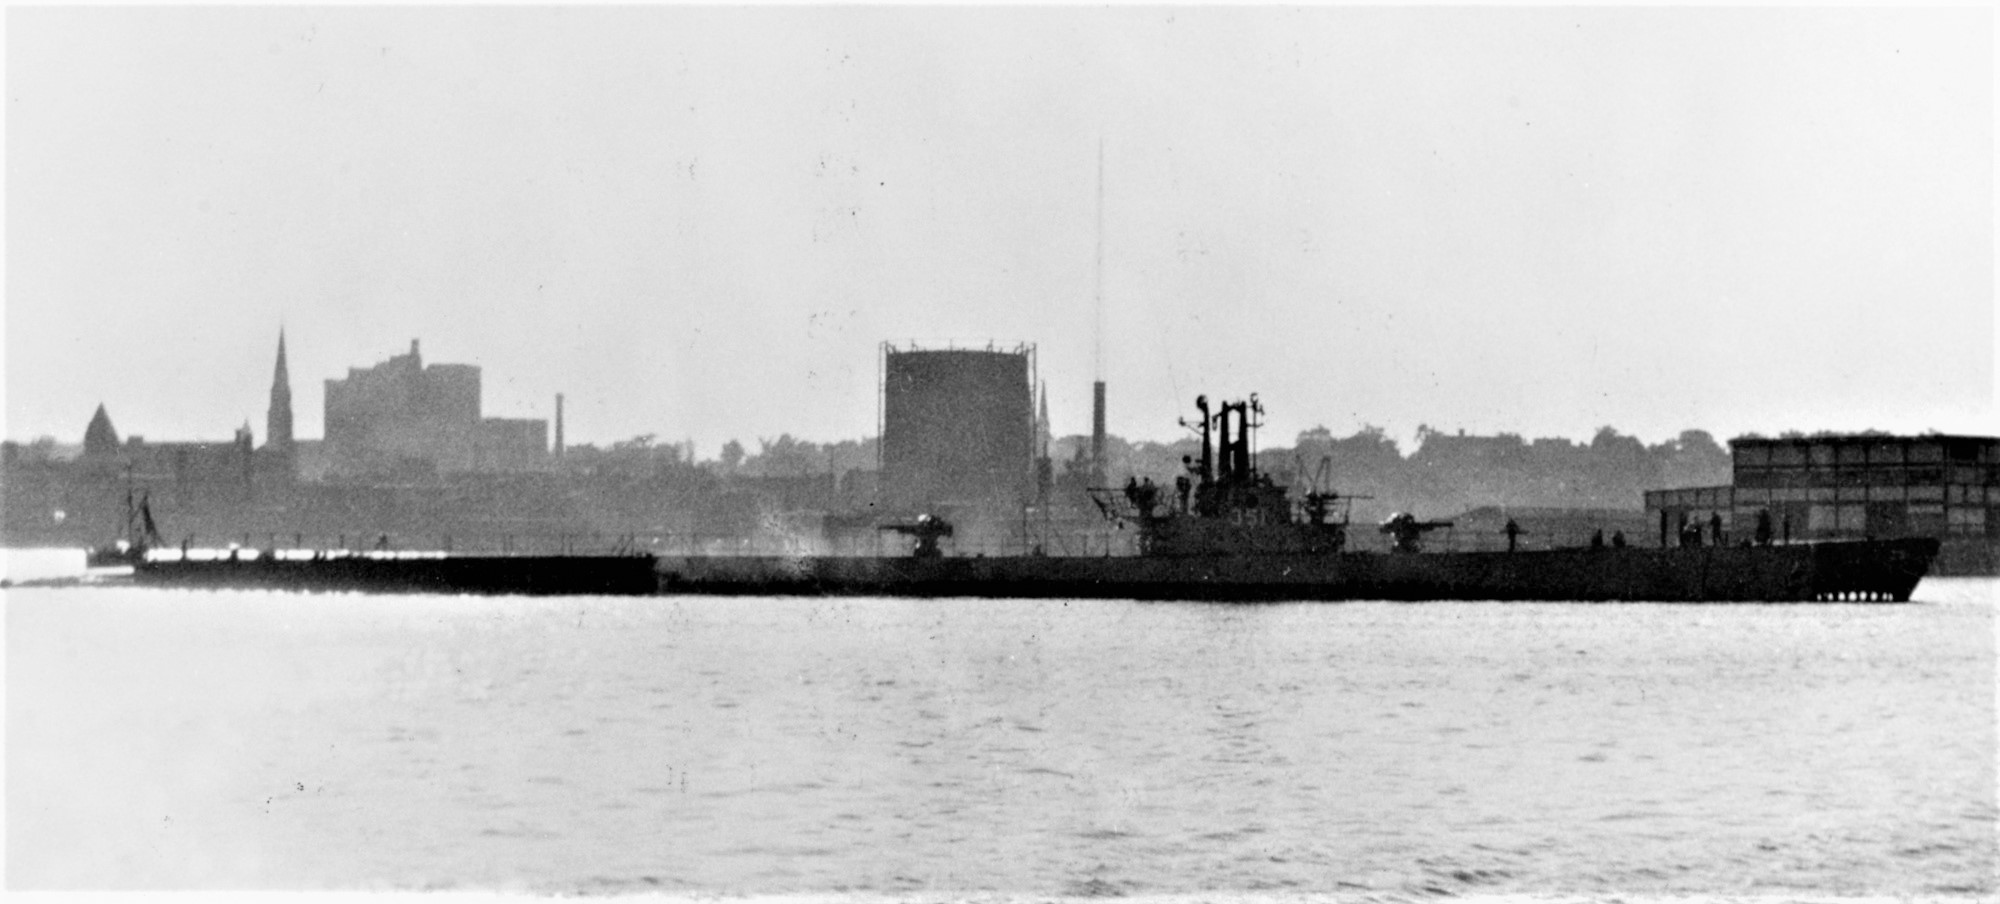 Greenfish in her as-built WWII-configuration, shown off Groton, Connecticut, in October 1947. Note her forward and aft 5-inch guns as well as her 40mm and 20mm cannon on the sail. Courtesy of D.M. McPherson, 1974. Catalog #: NH 79772